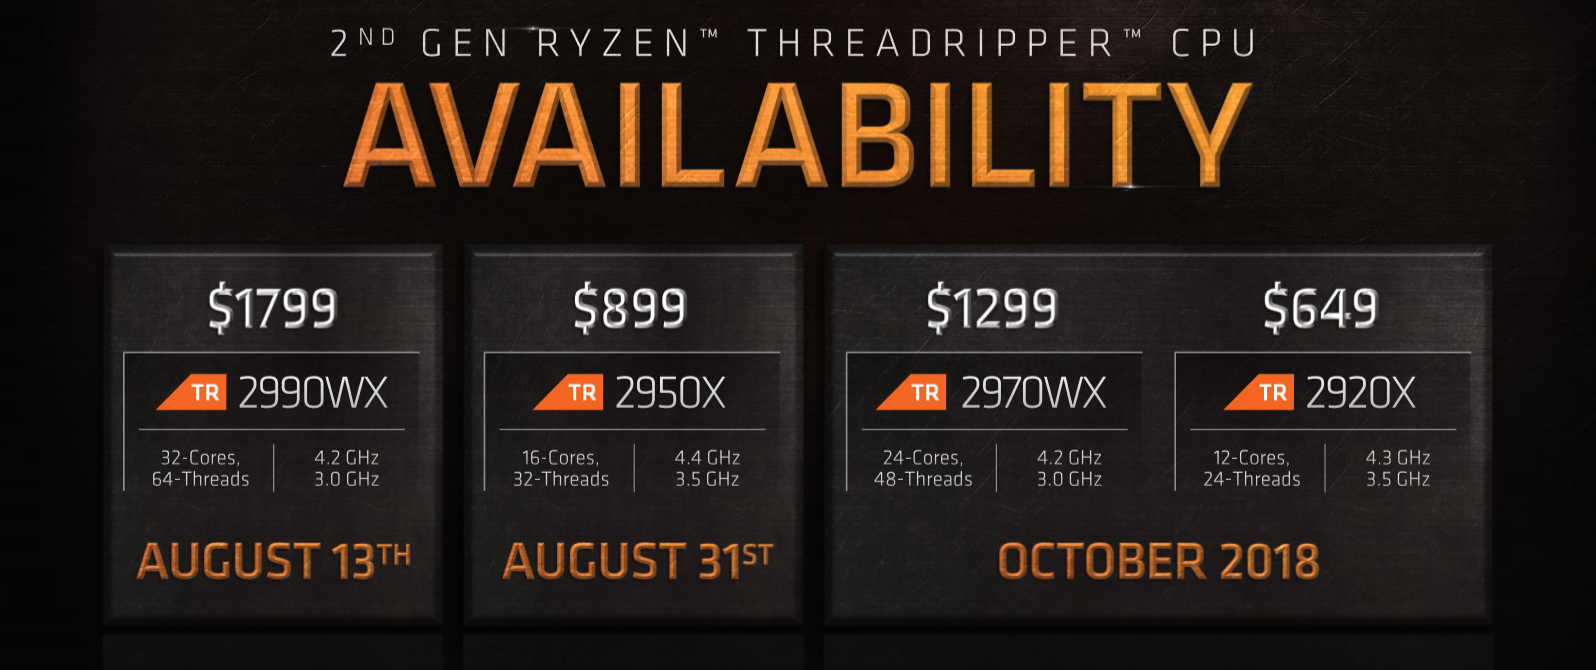 Amd Details And Prices 2nd Gen Ryzen Threadripper Bit Tech Net